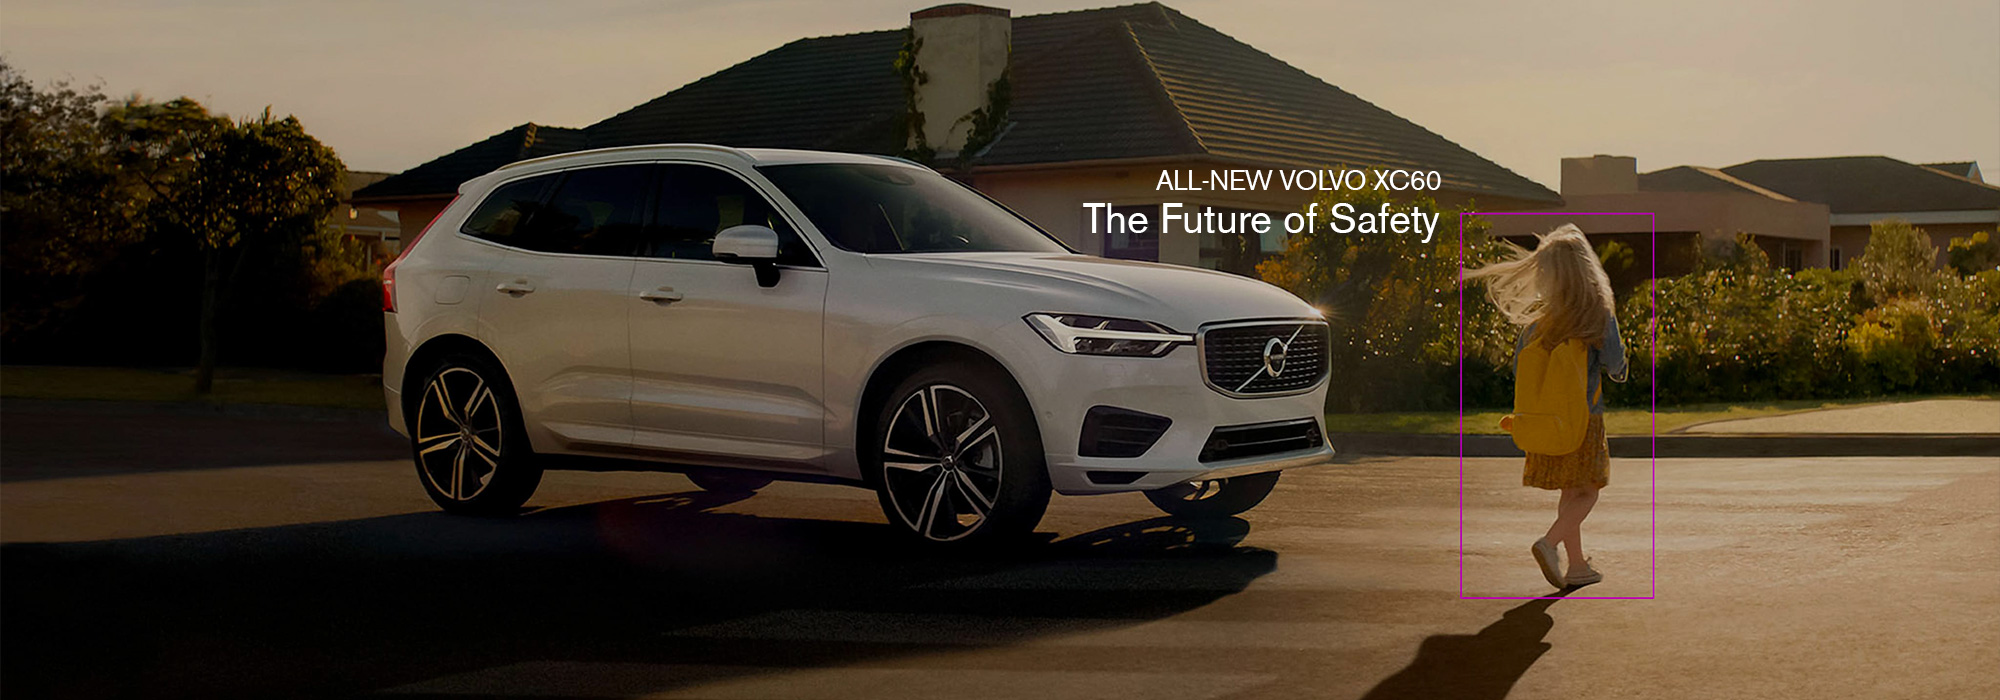 All-New XC60